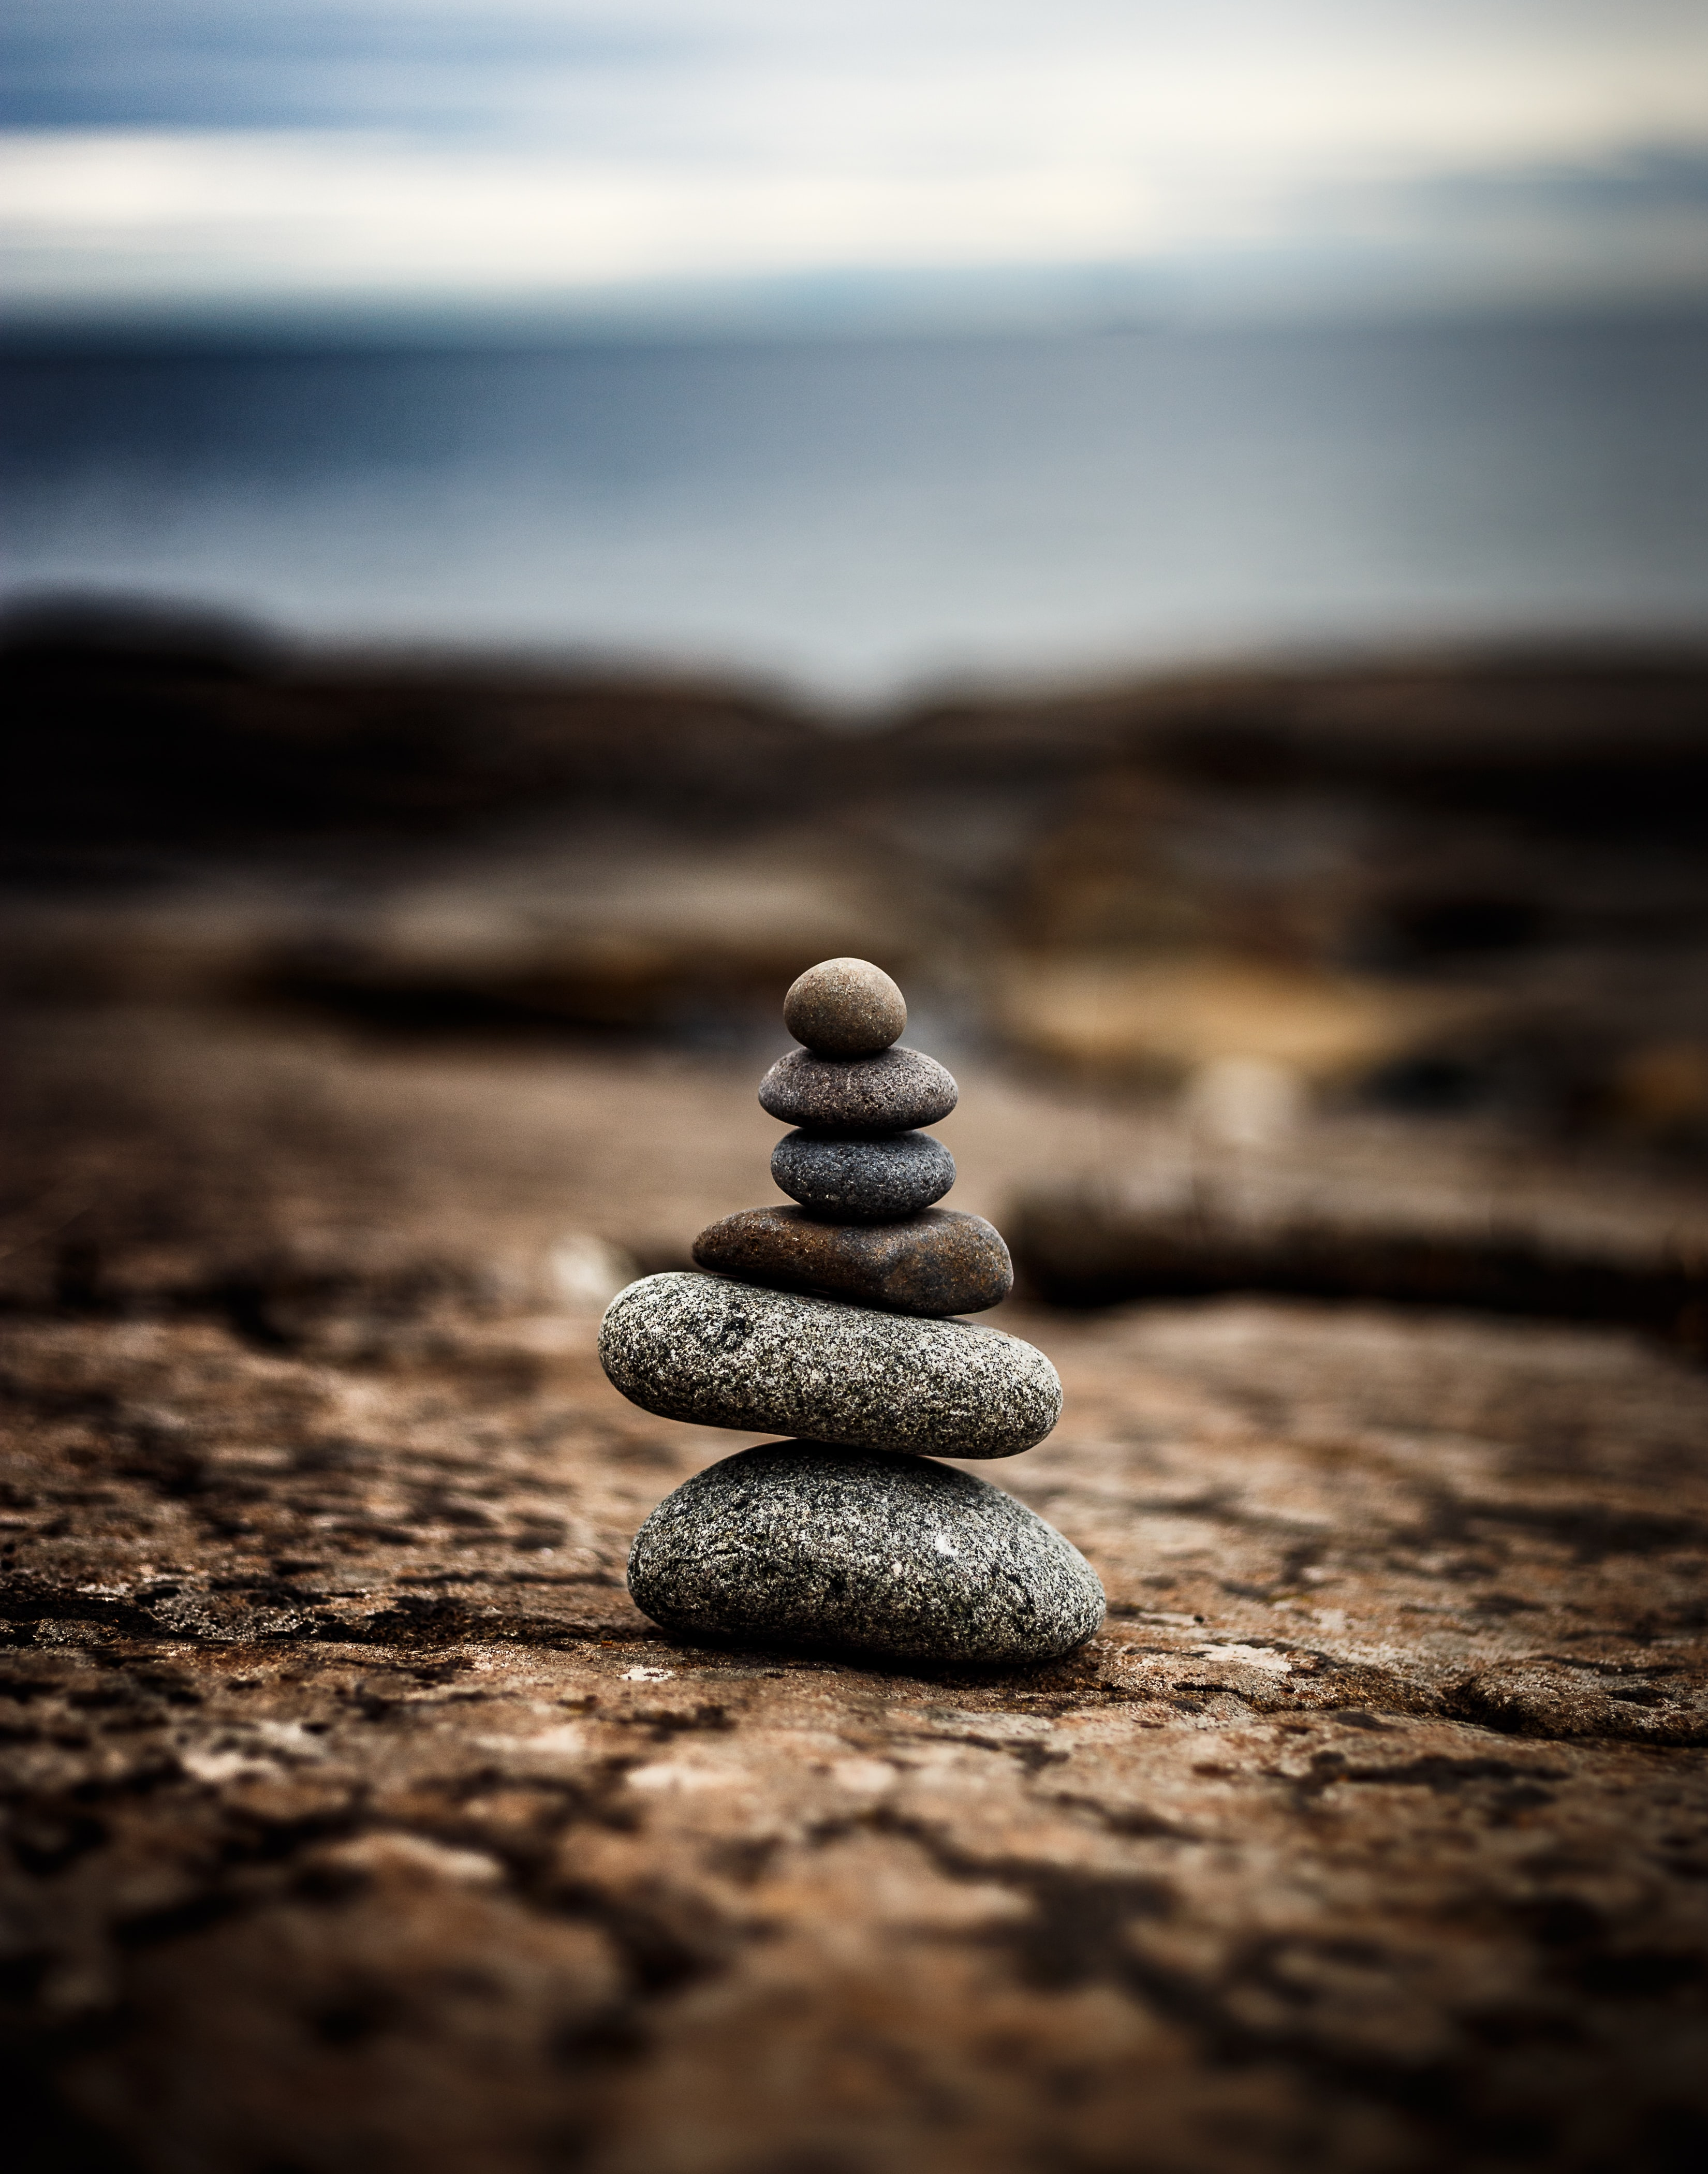 109419 download wallpaper Nature, Stones, Balance, Surface, Harmony screensavers and pictures for free